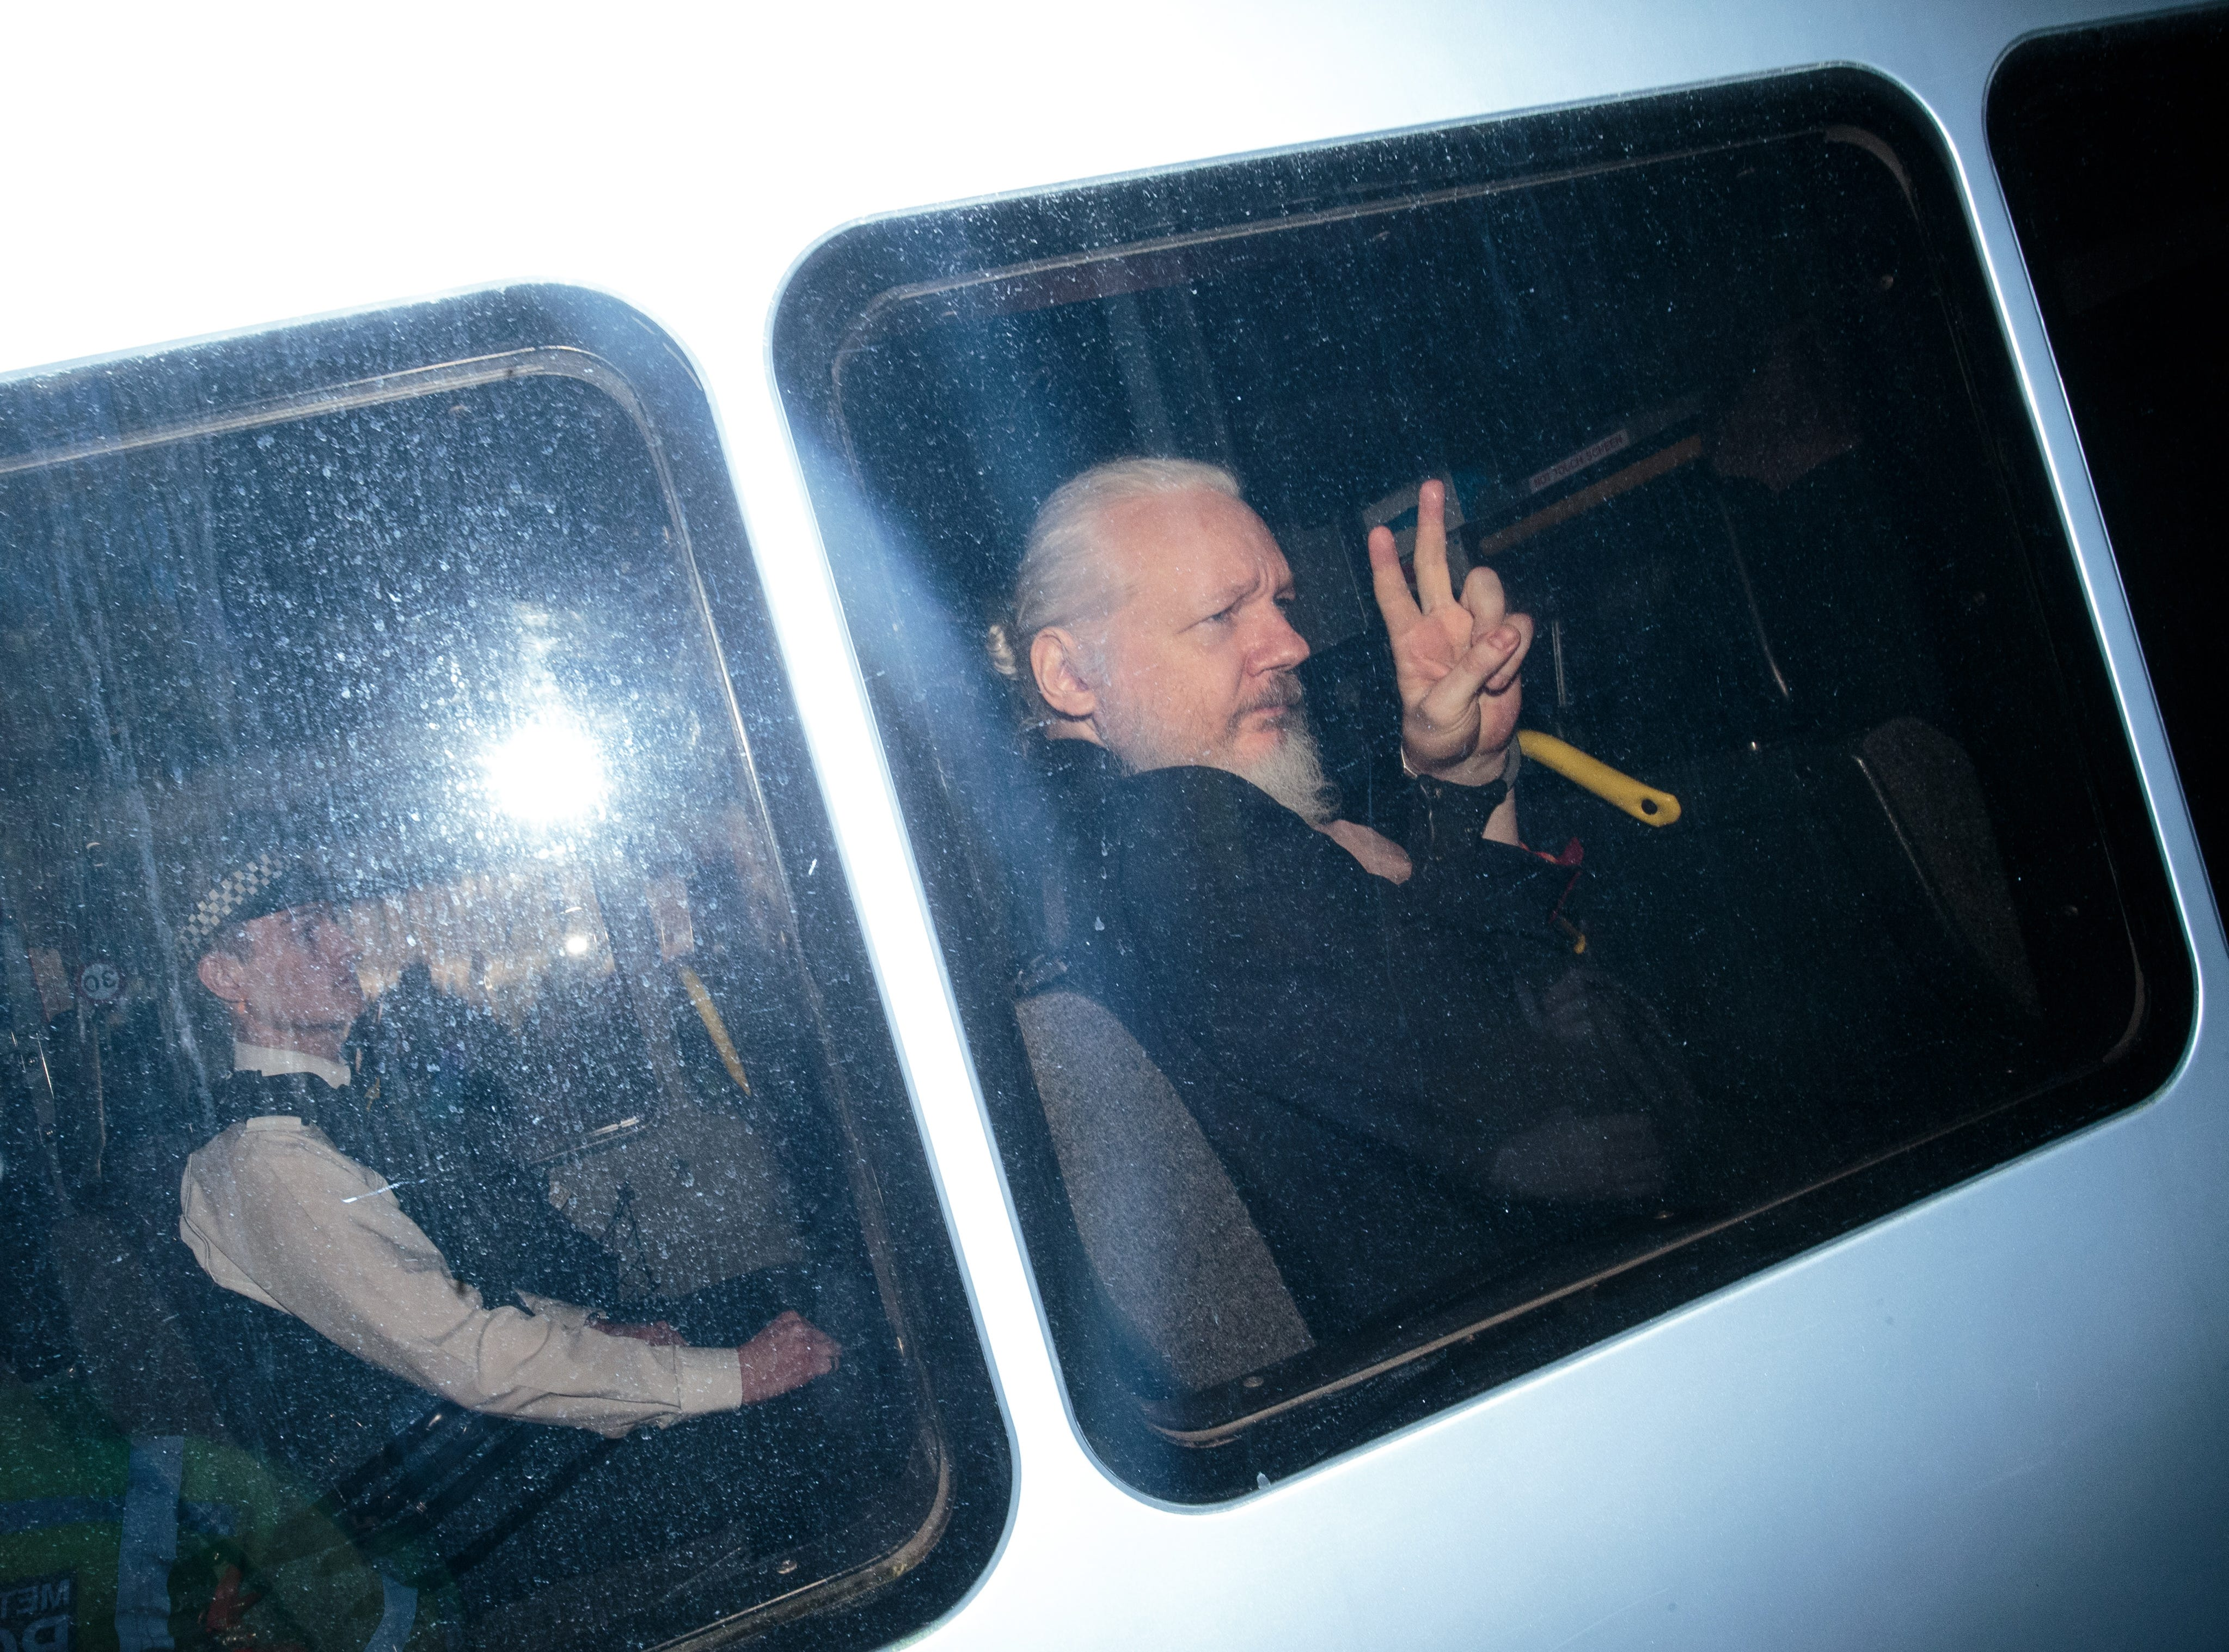 Julian Assange gestures to the media from a police vehicle on his arrival at court on April 11, 2019 in London, England.